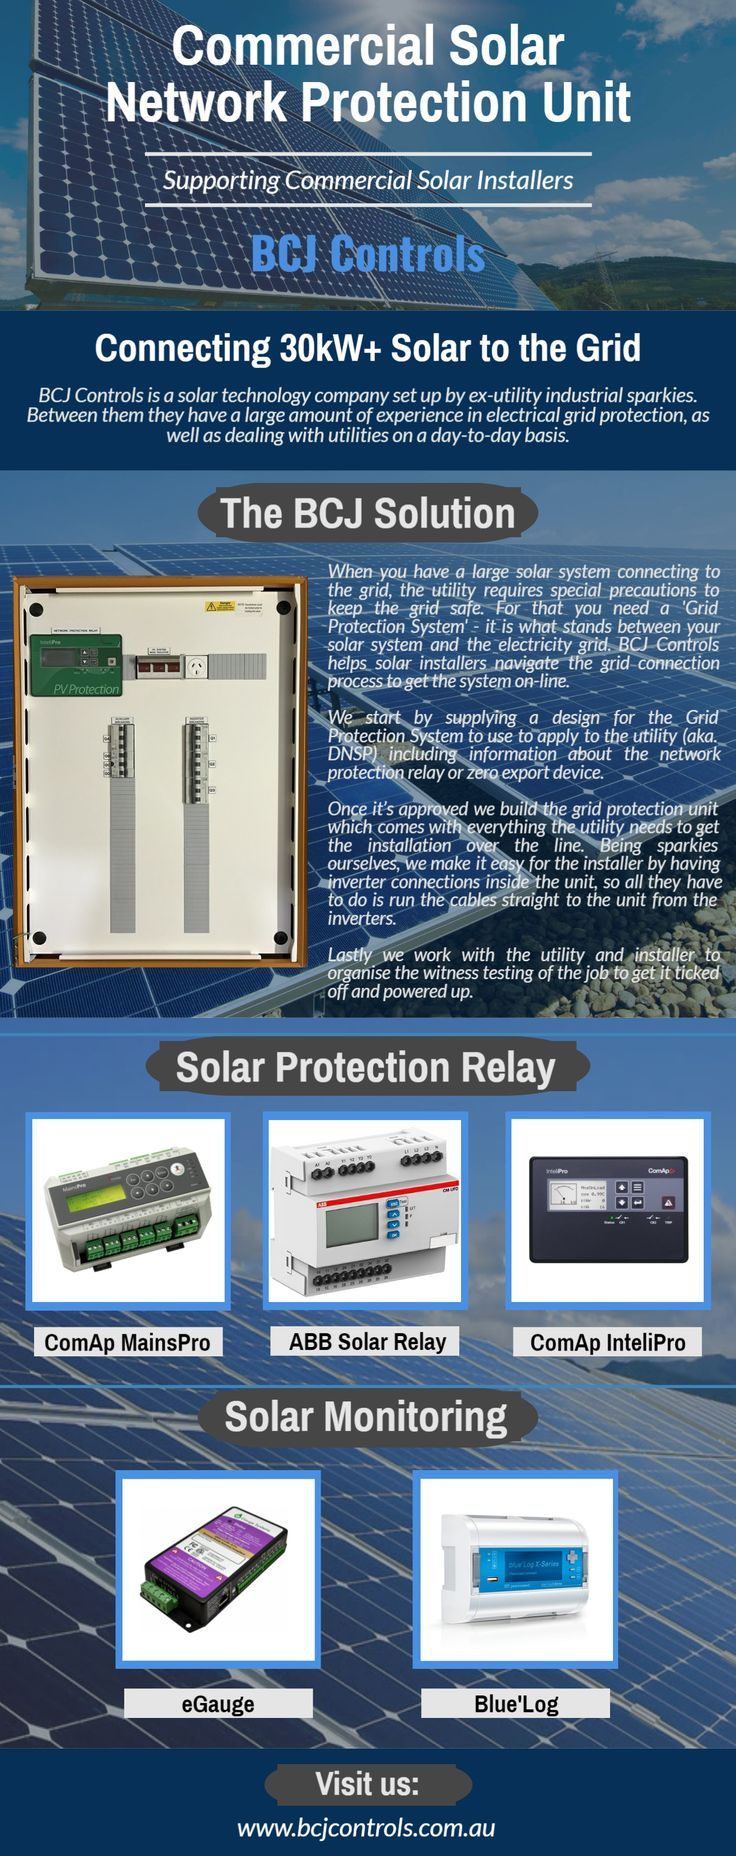 BCJ Controls based in Australia have done a lot of works in Electrical field. Offering Solar Protection Relays Installation, Witness Ausgrid Testing, Switchboard, and other Electrical works. Visit us for more details and more relays with quality features and functions: http://bcjcontrols.com.au.  #SolarProtectionRelay #ComapMainsPro #MainsPro #eGauge #eGaugeAustralia #BlueLog #BlueLogDataLogger #ComApIntelliPro #ComApInteliPro